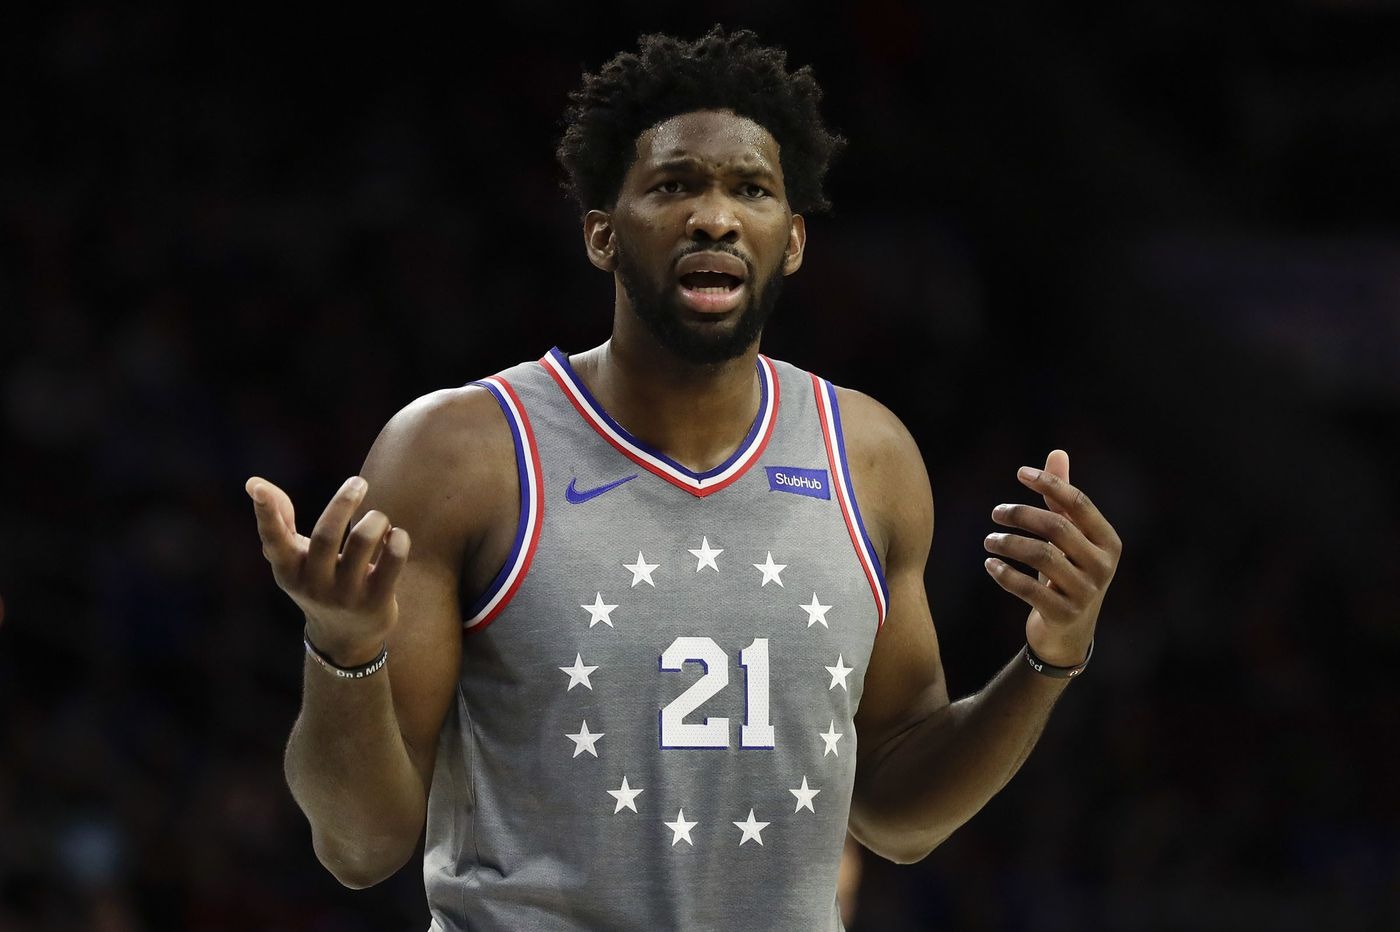 Sixers' Joel Embiid is excited to play with Jimmy Butler, but says he'll miss Dario Saric and Robert Covington